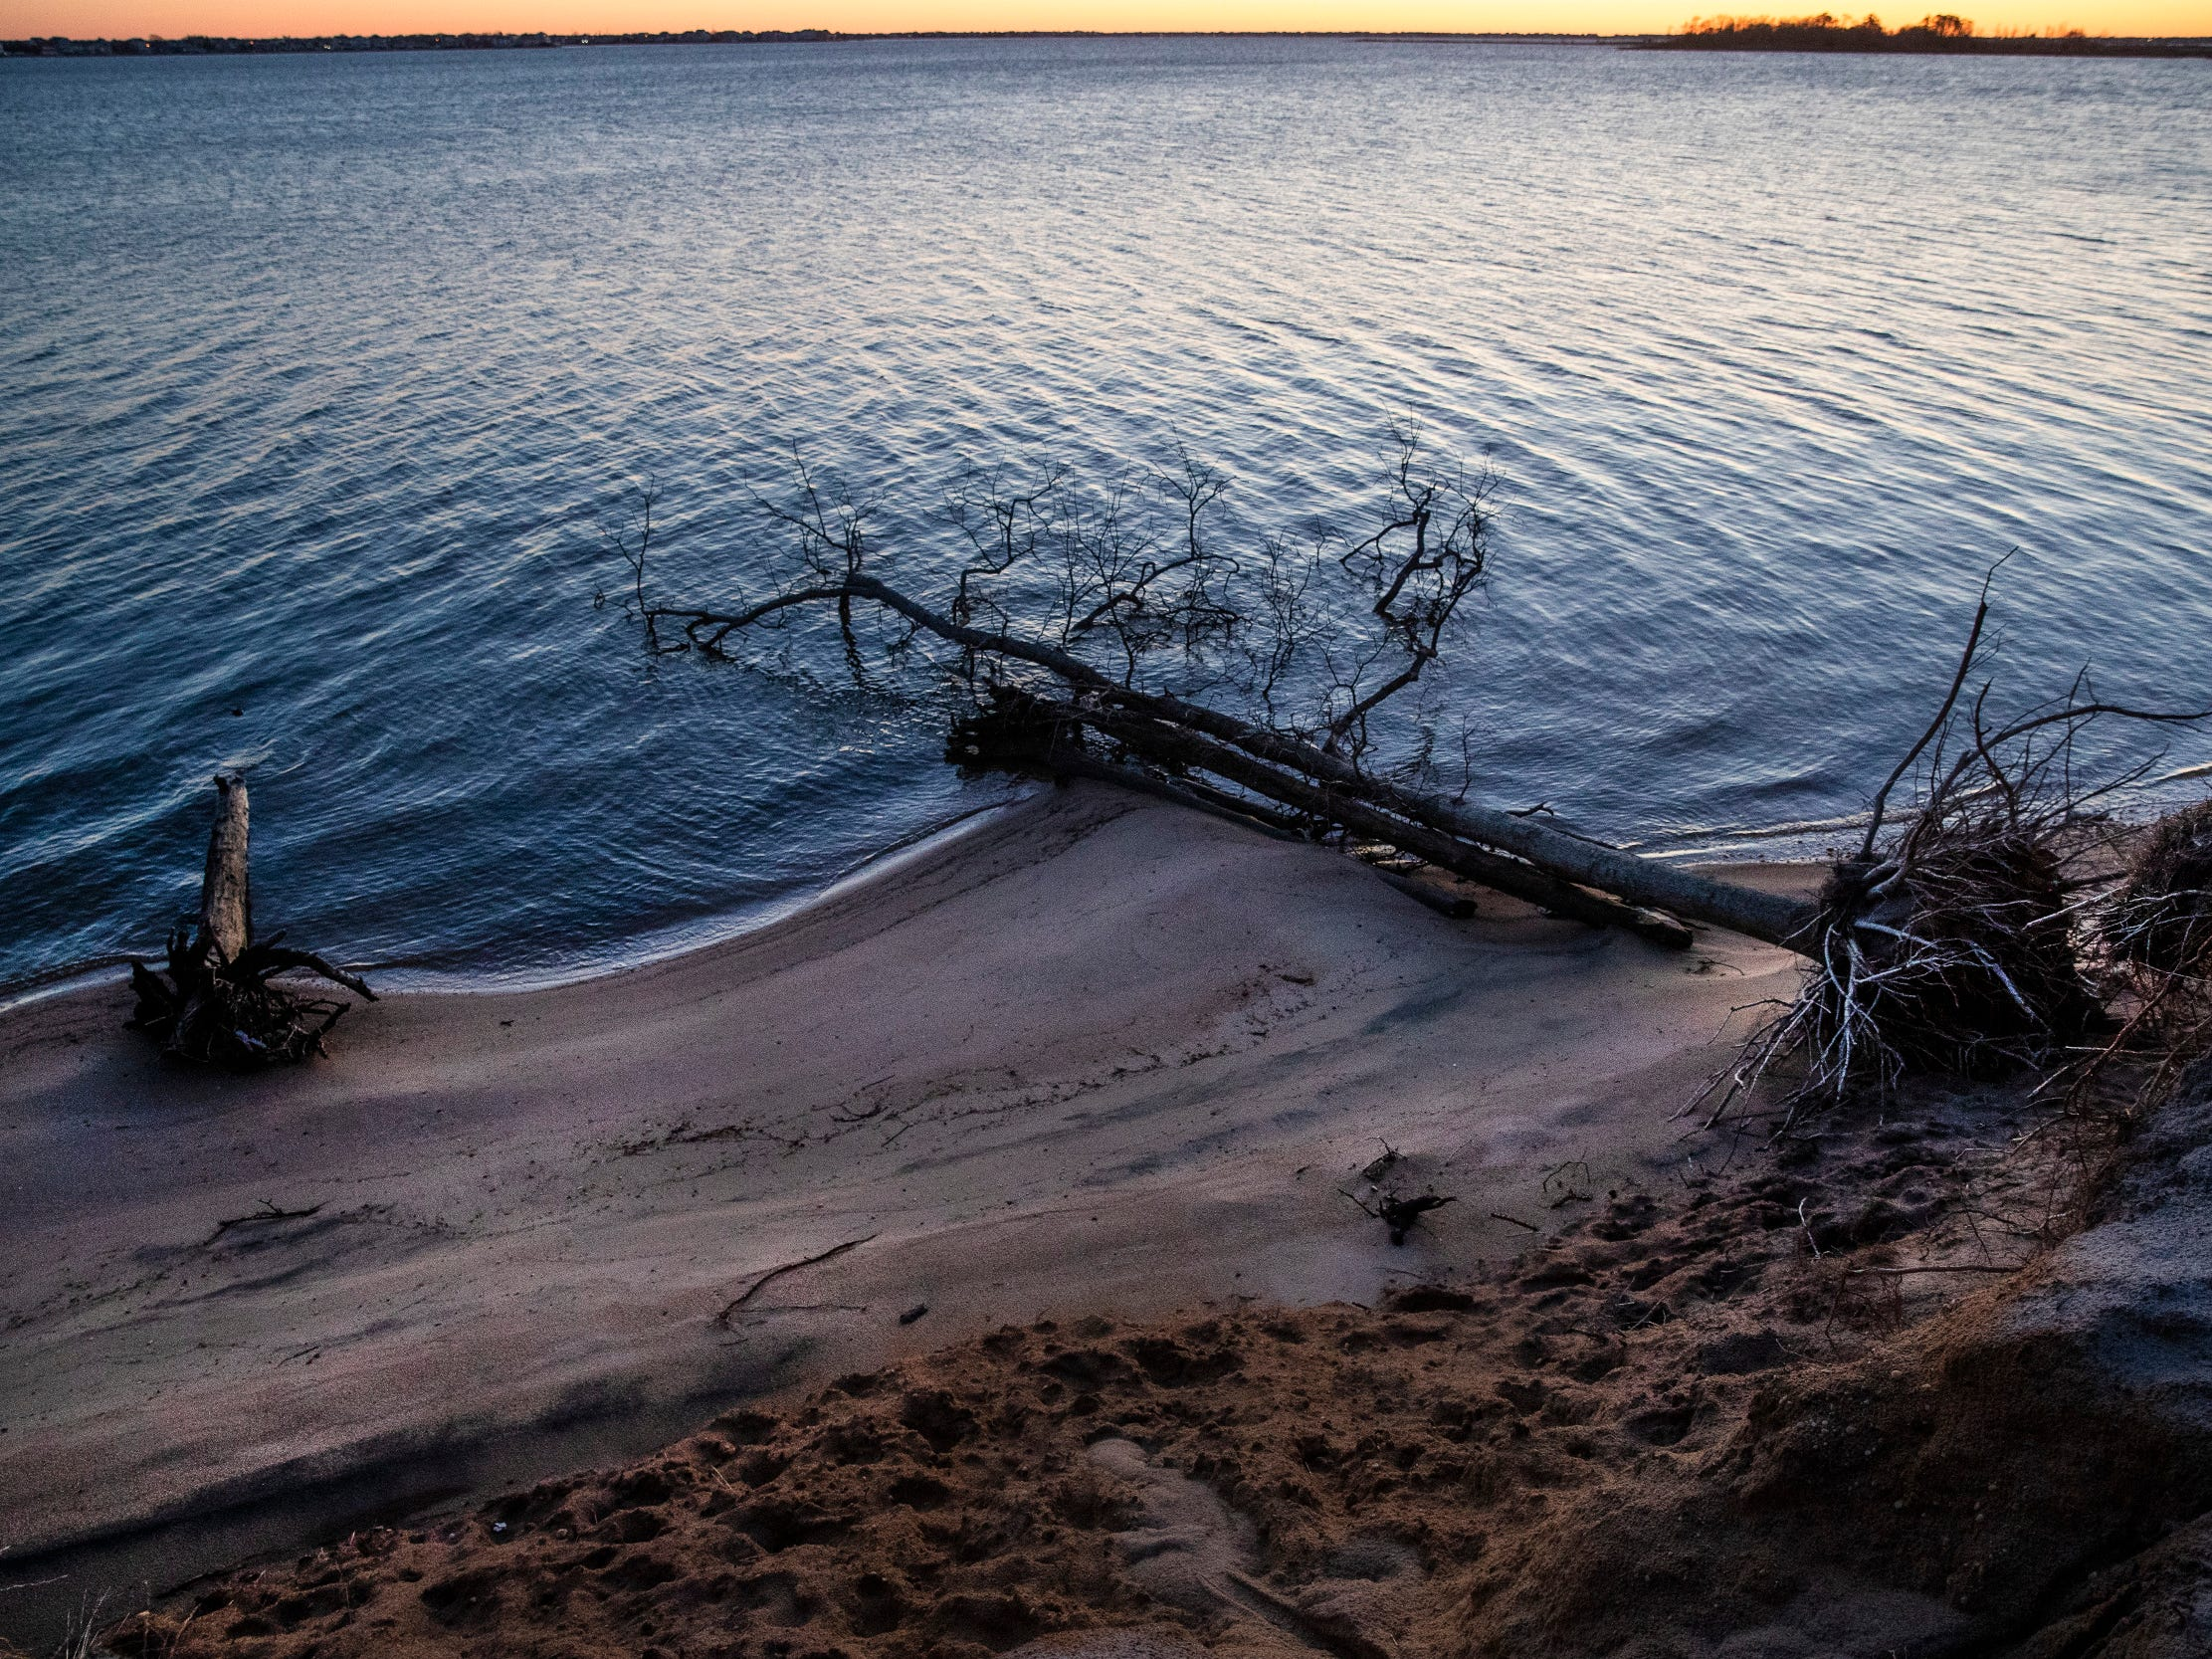 Cattus Island County Park is a 530 acres passive recreation park in Toms River that provides views of the Barnegat Bay and an impressive selection of bird and wildlife. Peter Ackerman